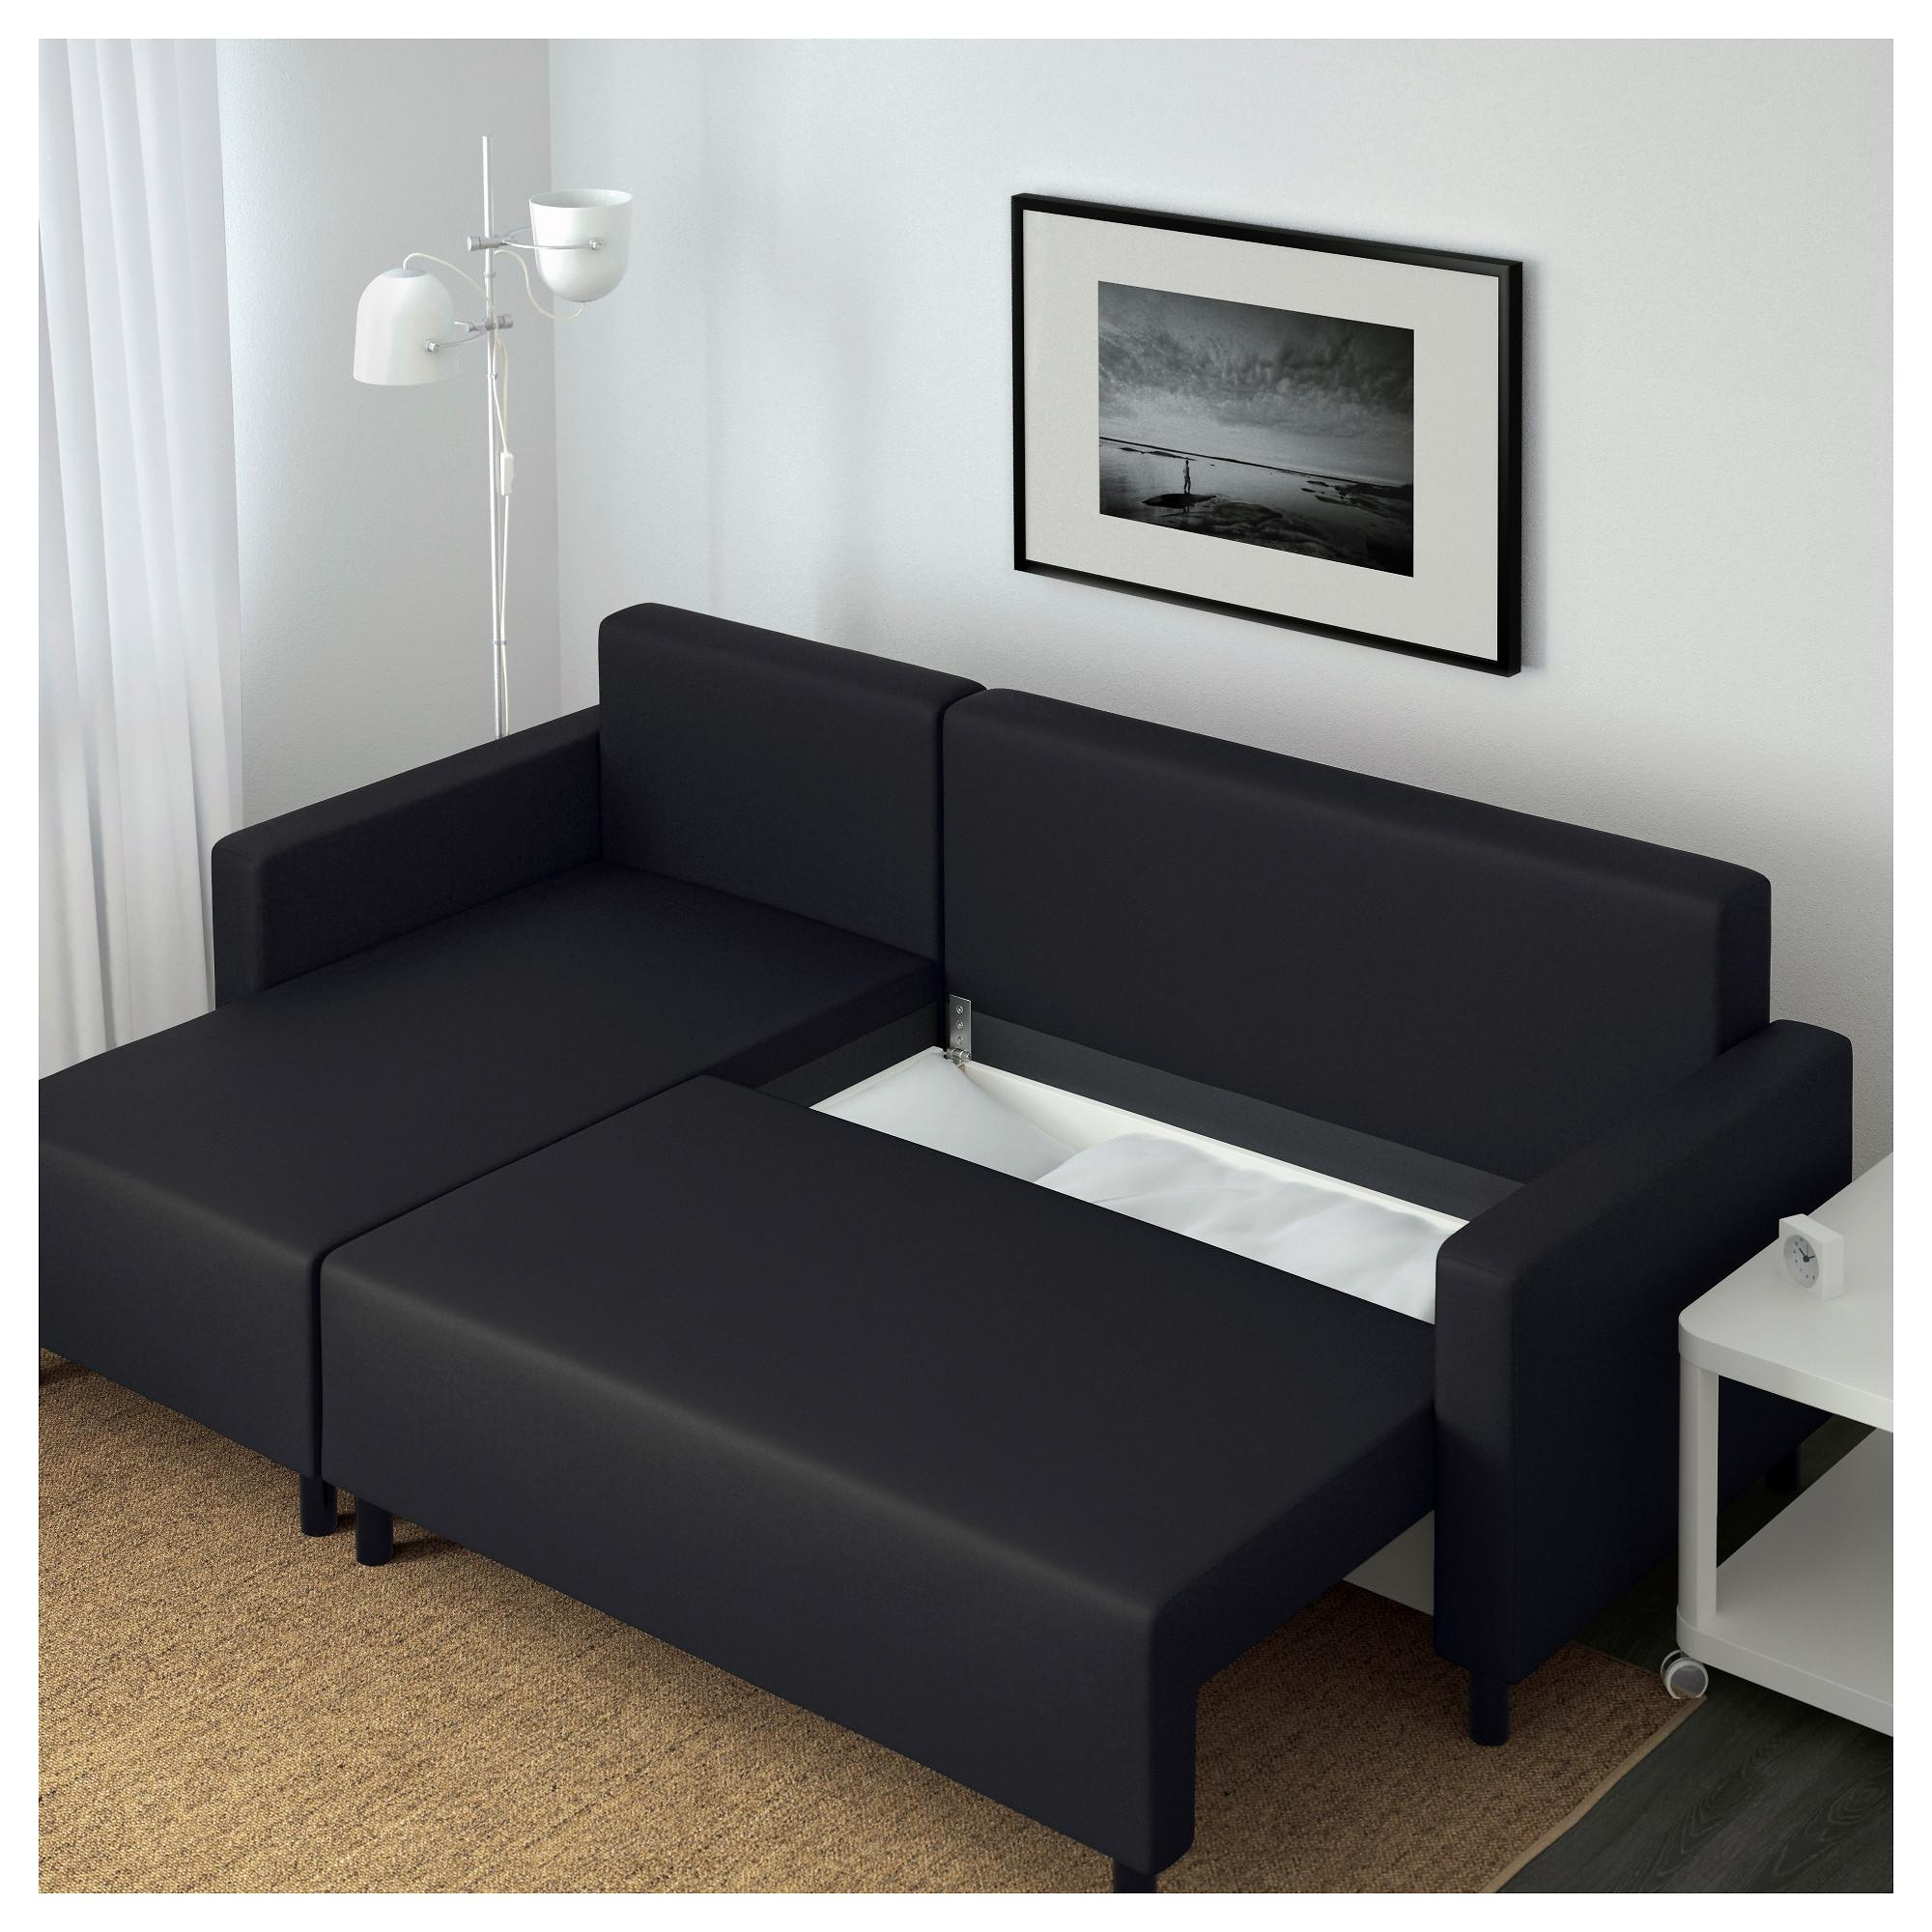 20 best ideas chaise longue sofa beds sofa ideas - Sofas con chaise longue ...